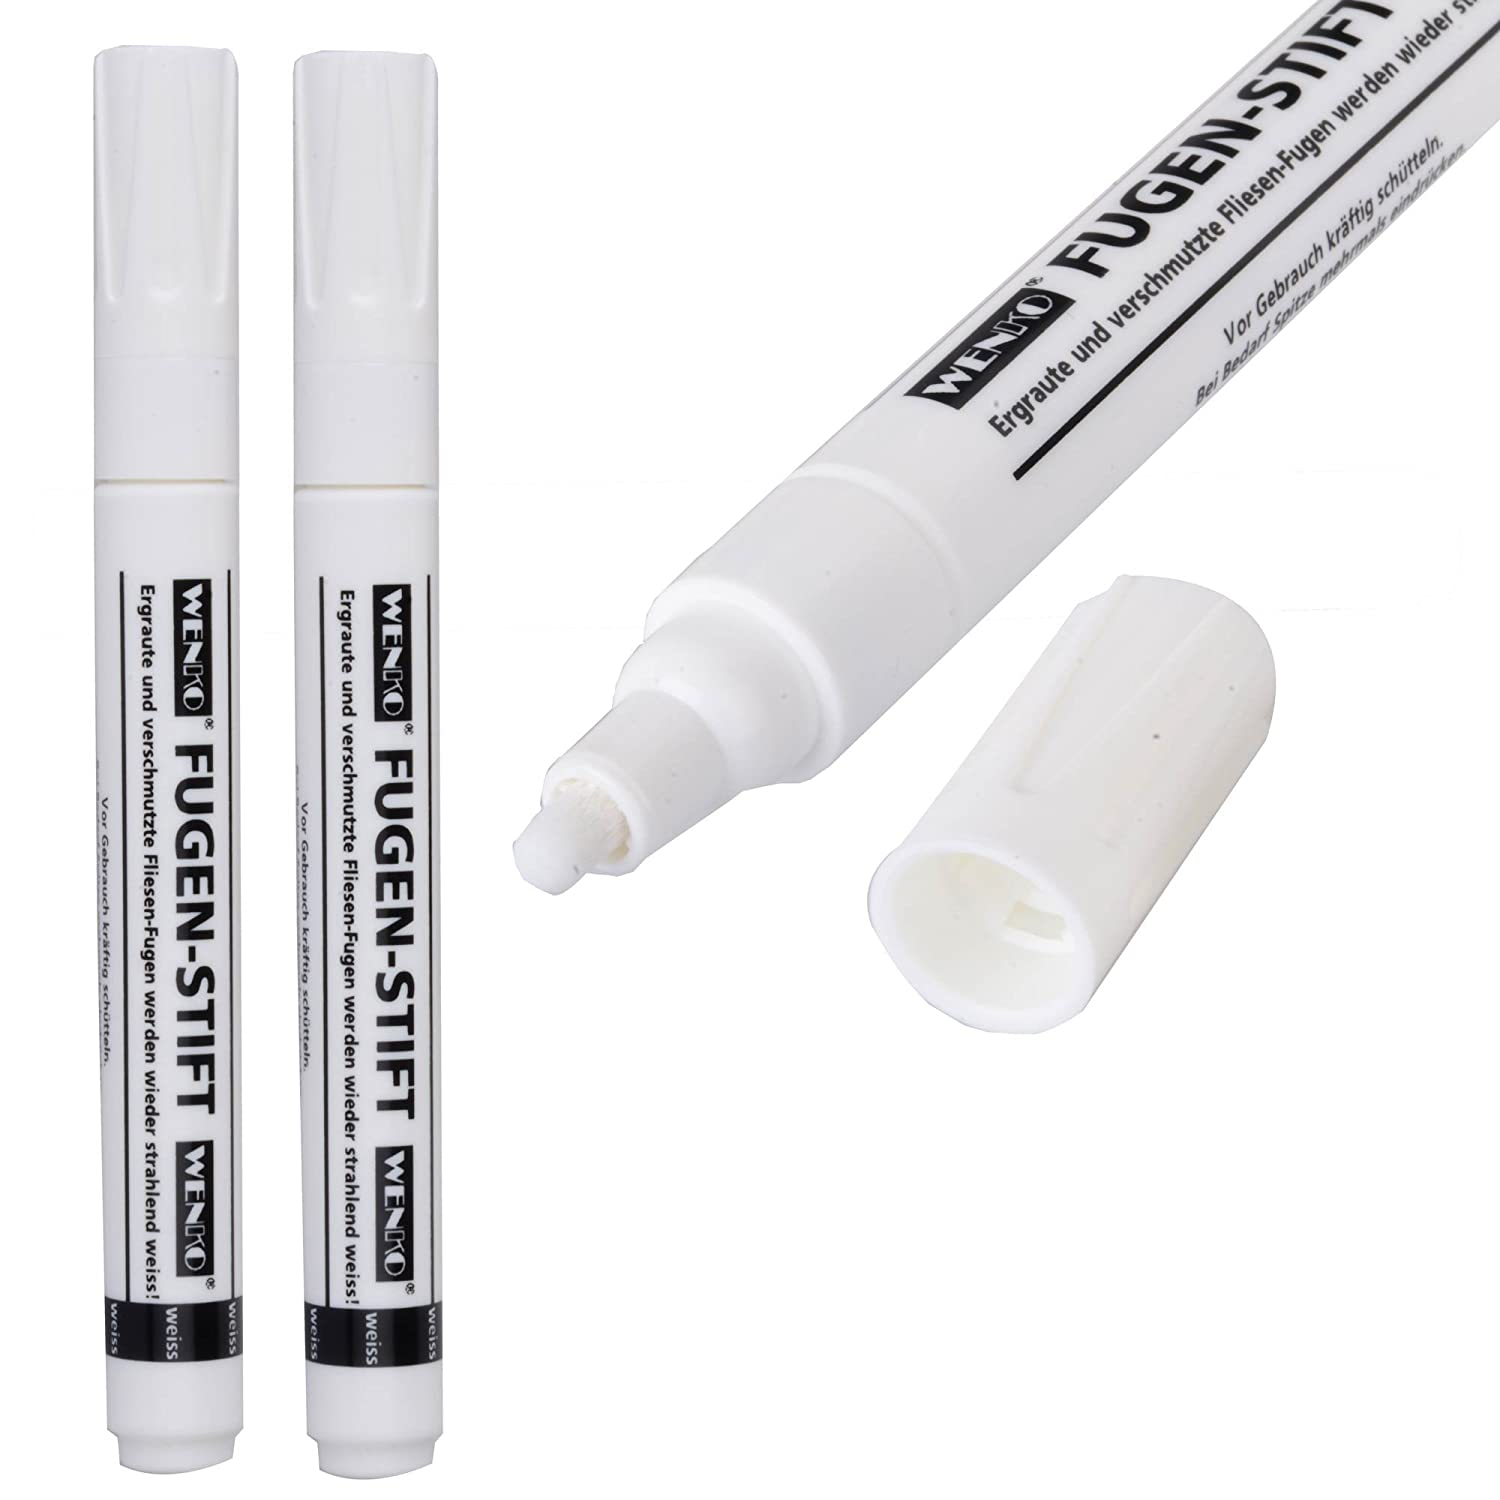 2Pk Of Tile Grout Whitening Pens !!no brand!!